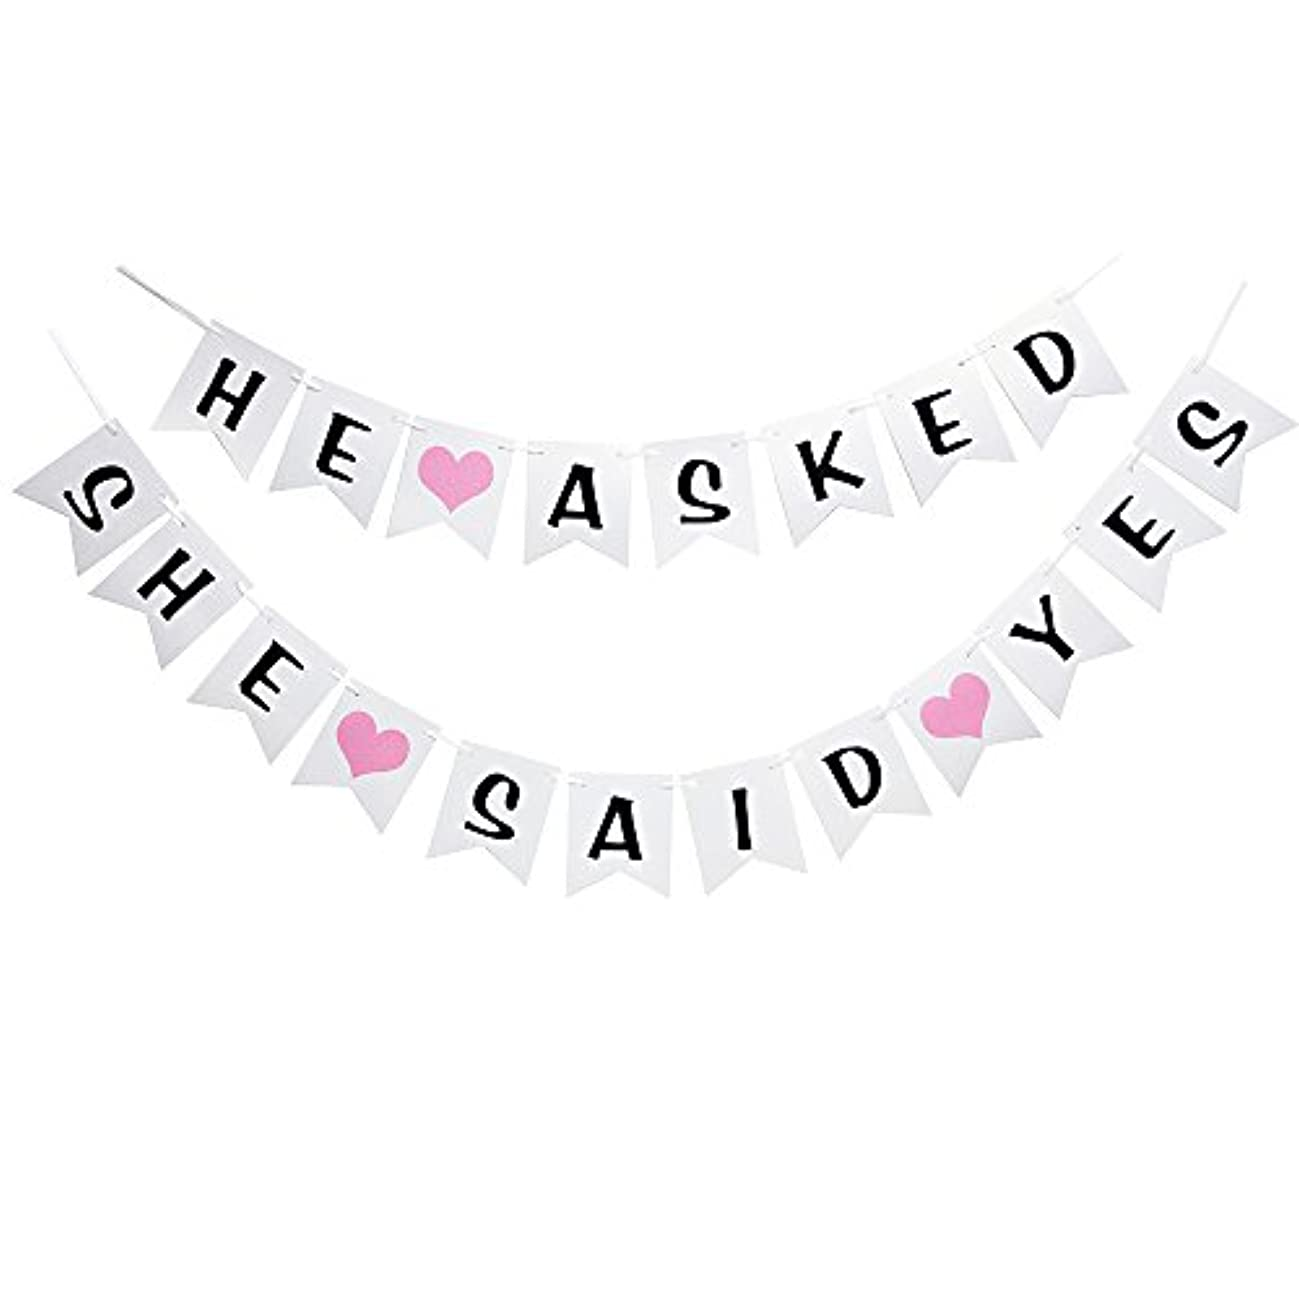 (Two )He Asked She Said Yes Banner- Hanging Pennant Party Banner Decorations Bachelorette Party Decorations - Engagement Party Decorations (white)